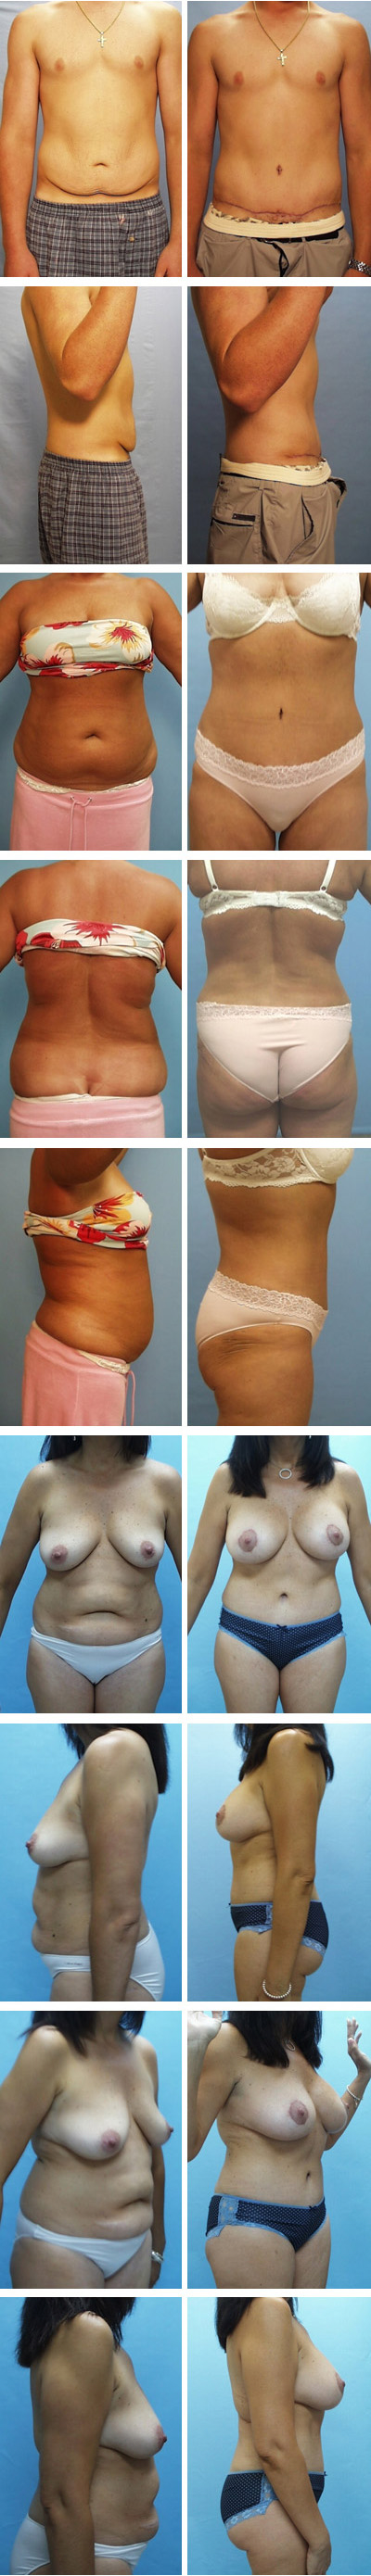 Tummy Tuck Before and After Sets 1